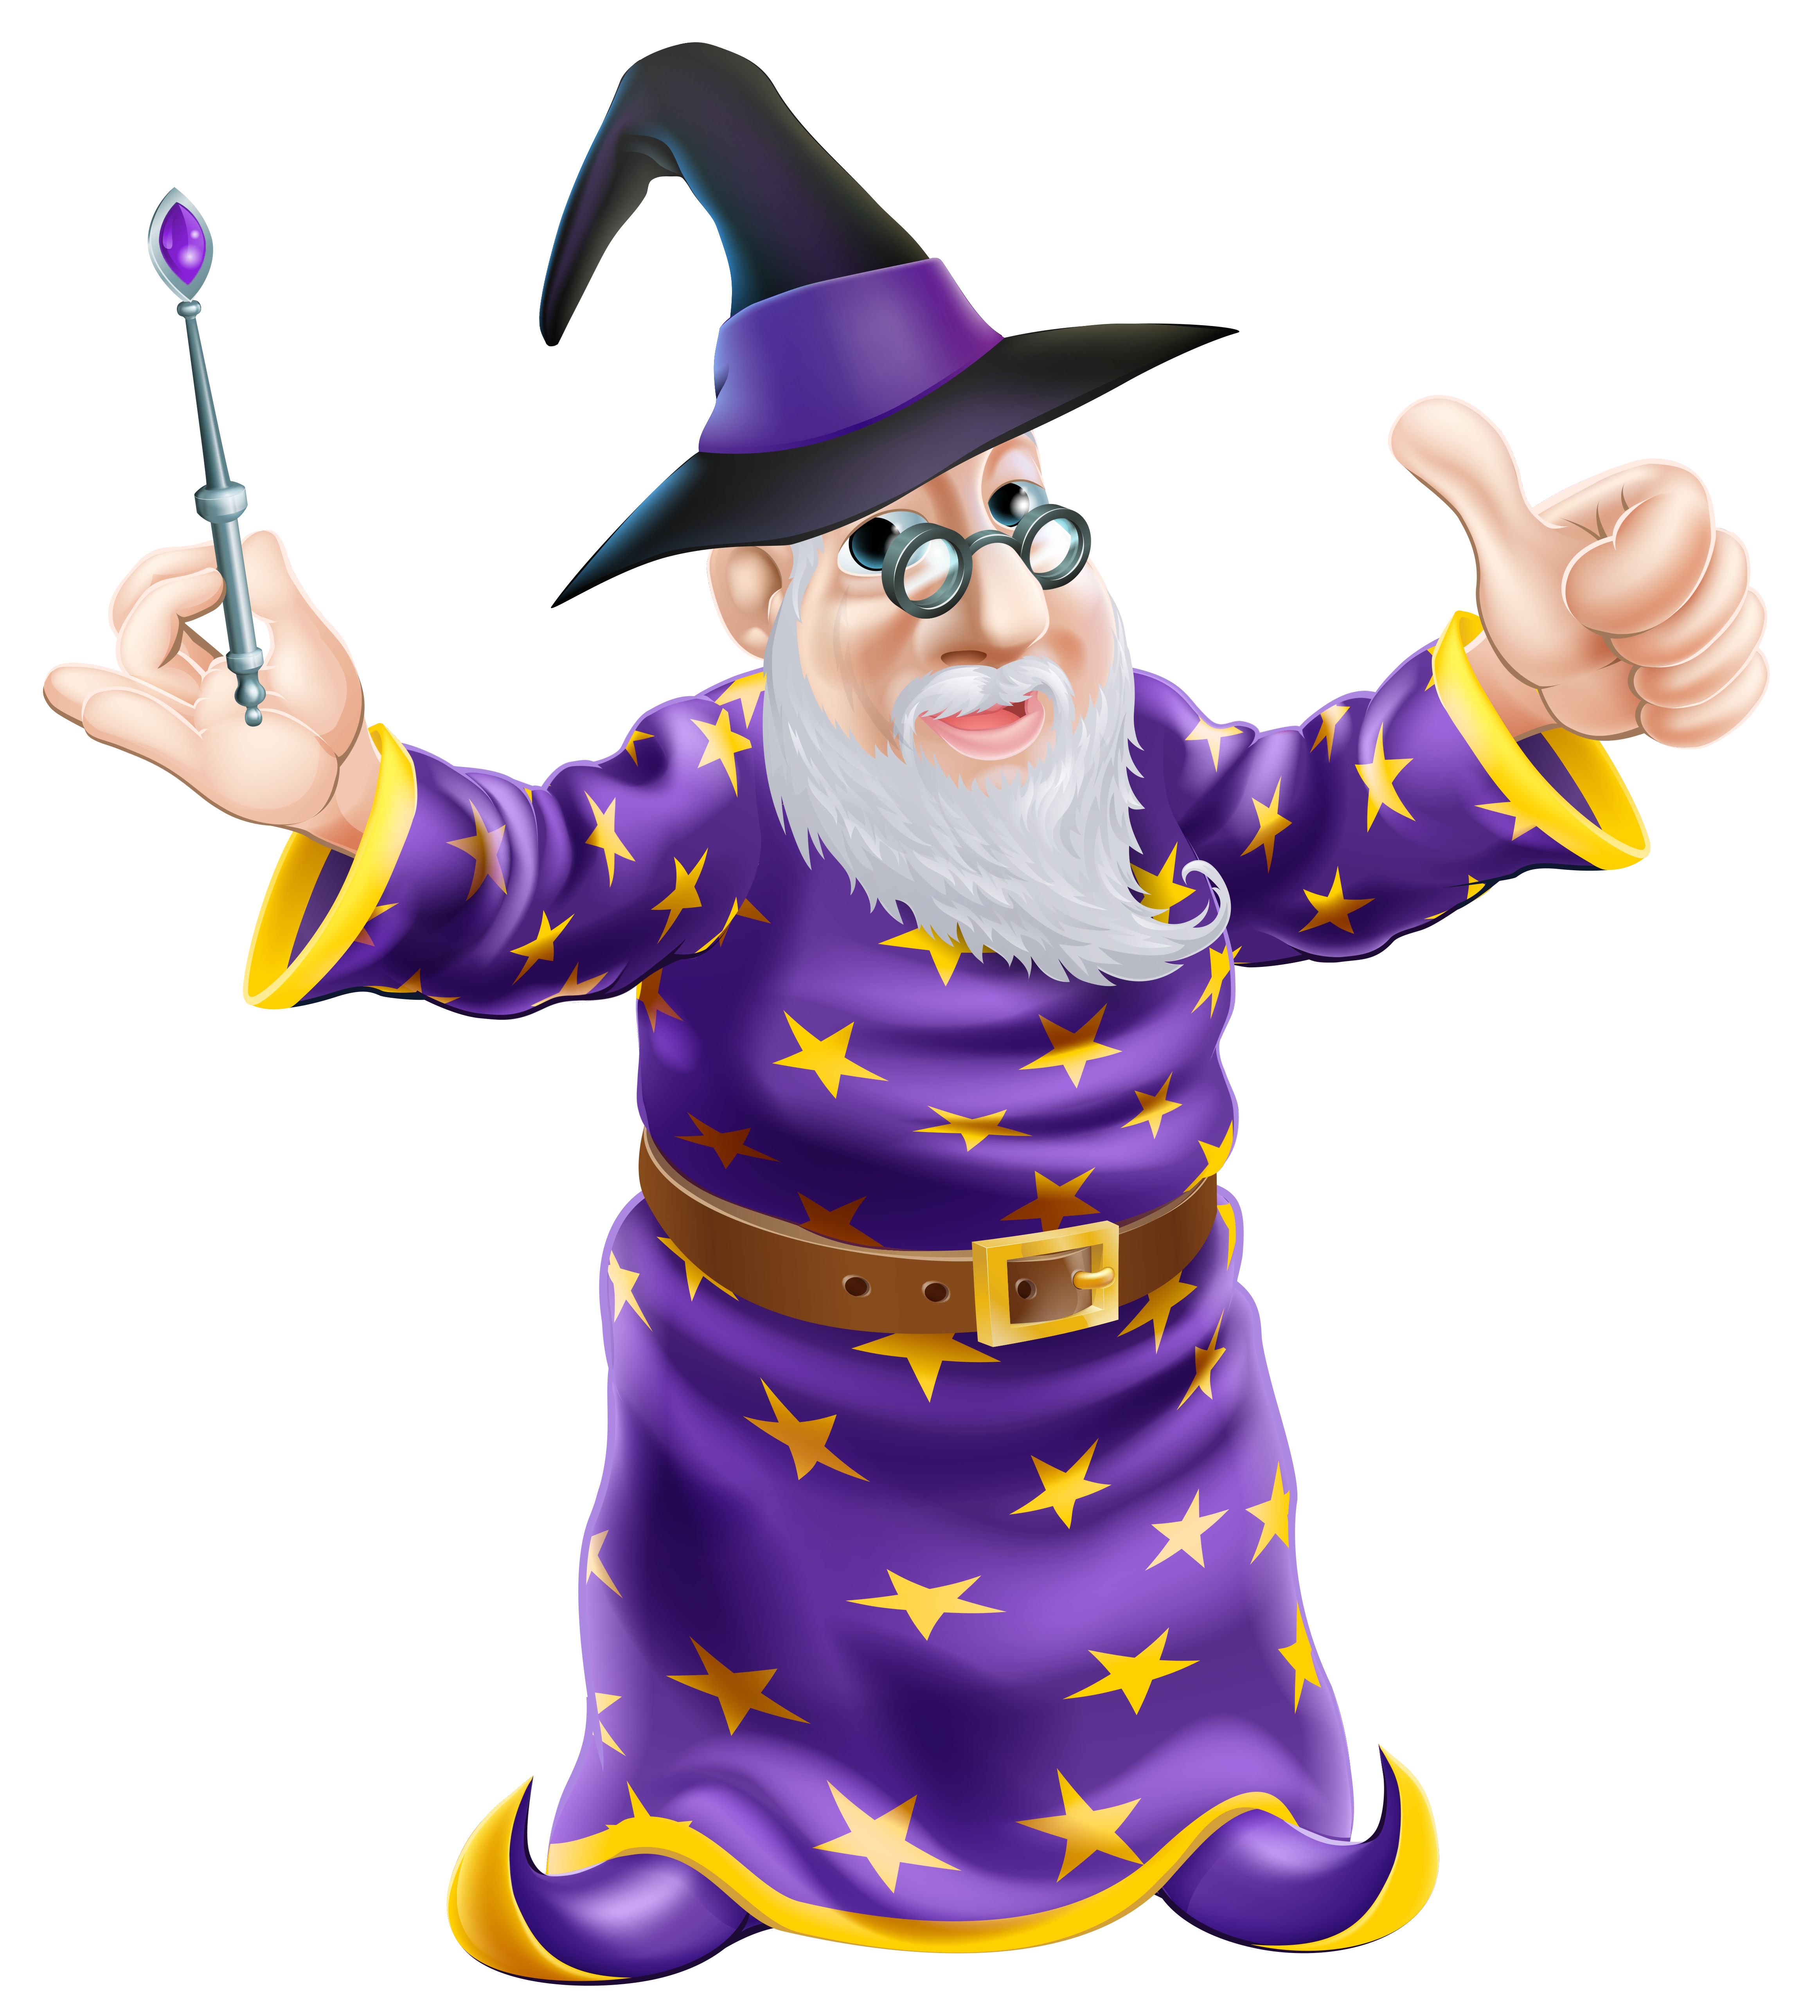 Wizard clipart for kids clip freeuse library Free Wizard Cliparts, Download Free Clip Art, Free Clip Art ... clip freeuse library